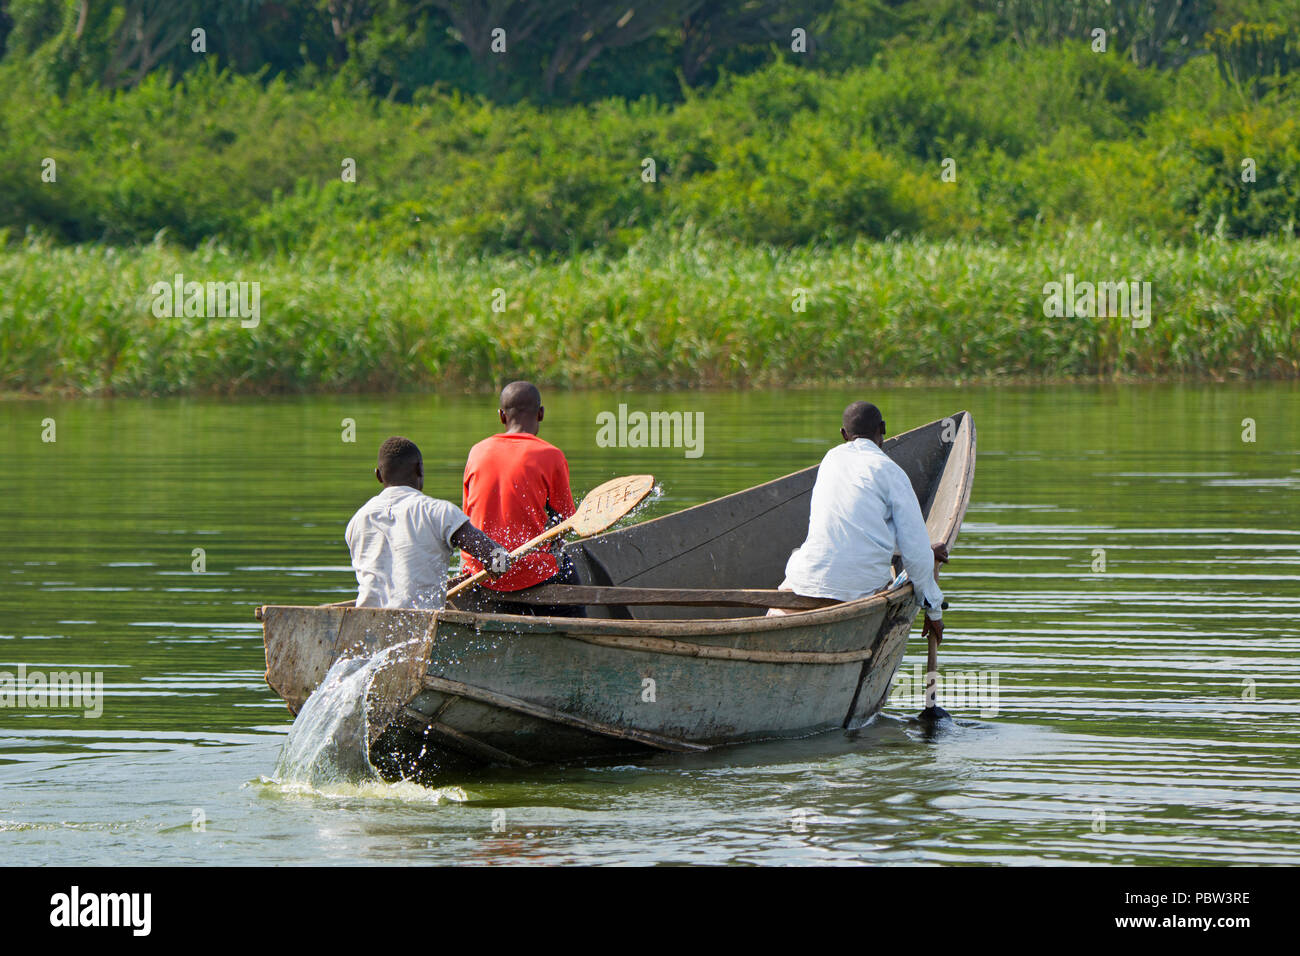 Three Men in a Boat, Fishermen Rowing, Paddling along the Kazinga Channel, Uganda, East Africa - Stock Image